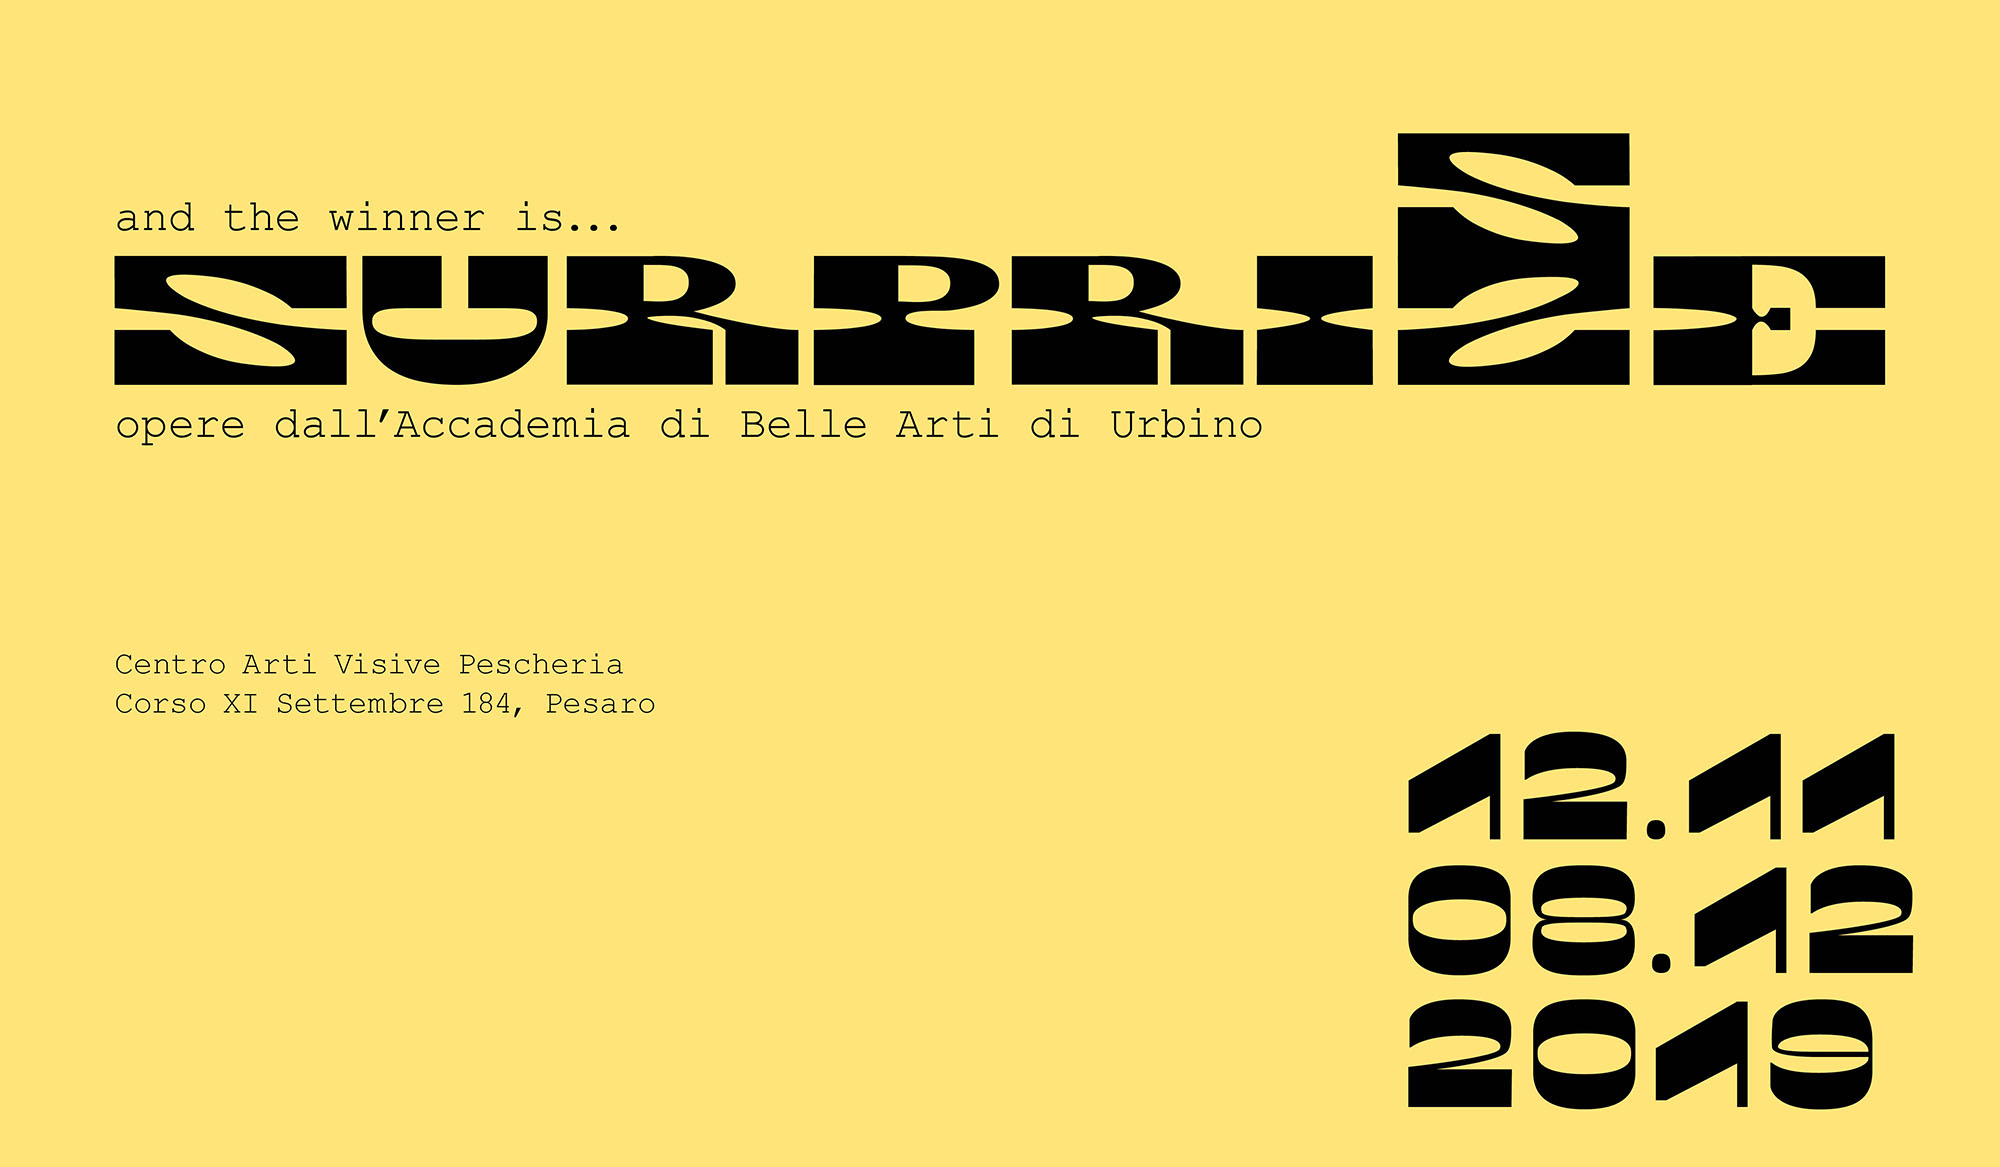 In arrivo la mostra &quote;Surprize&quote; in Pescheria